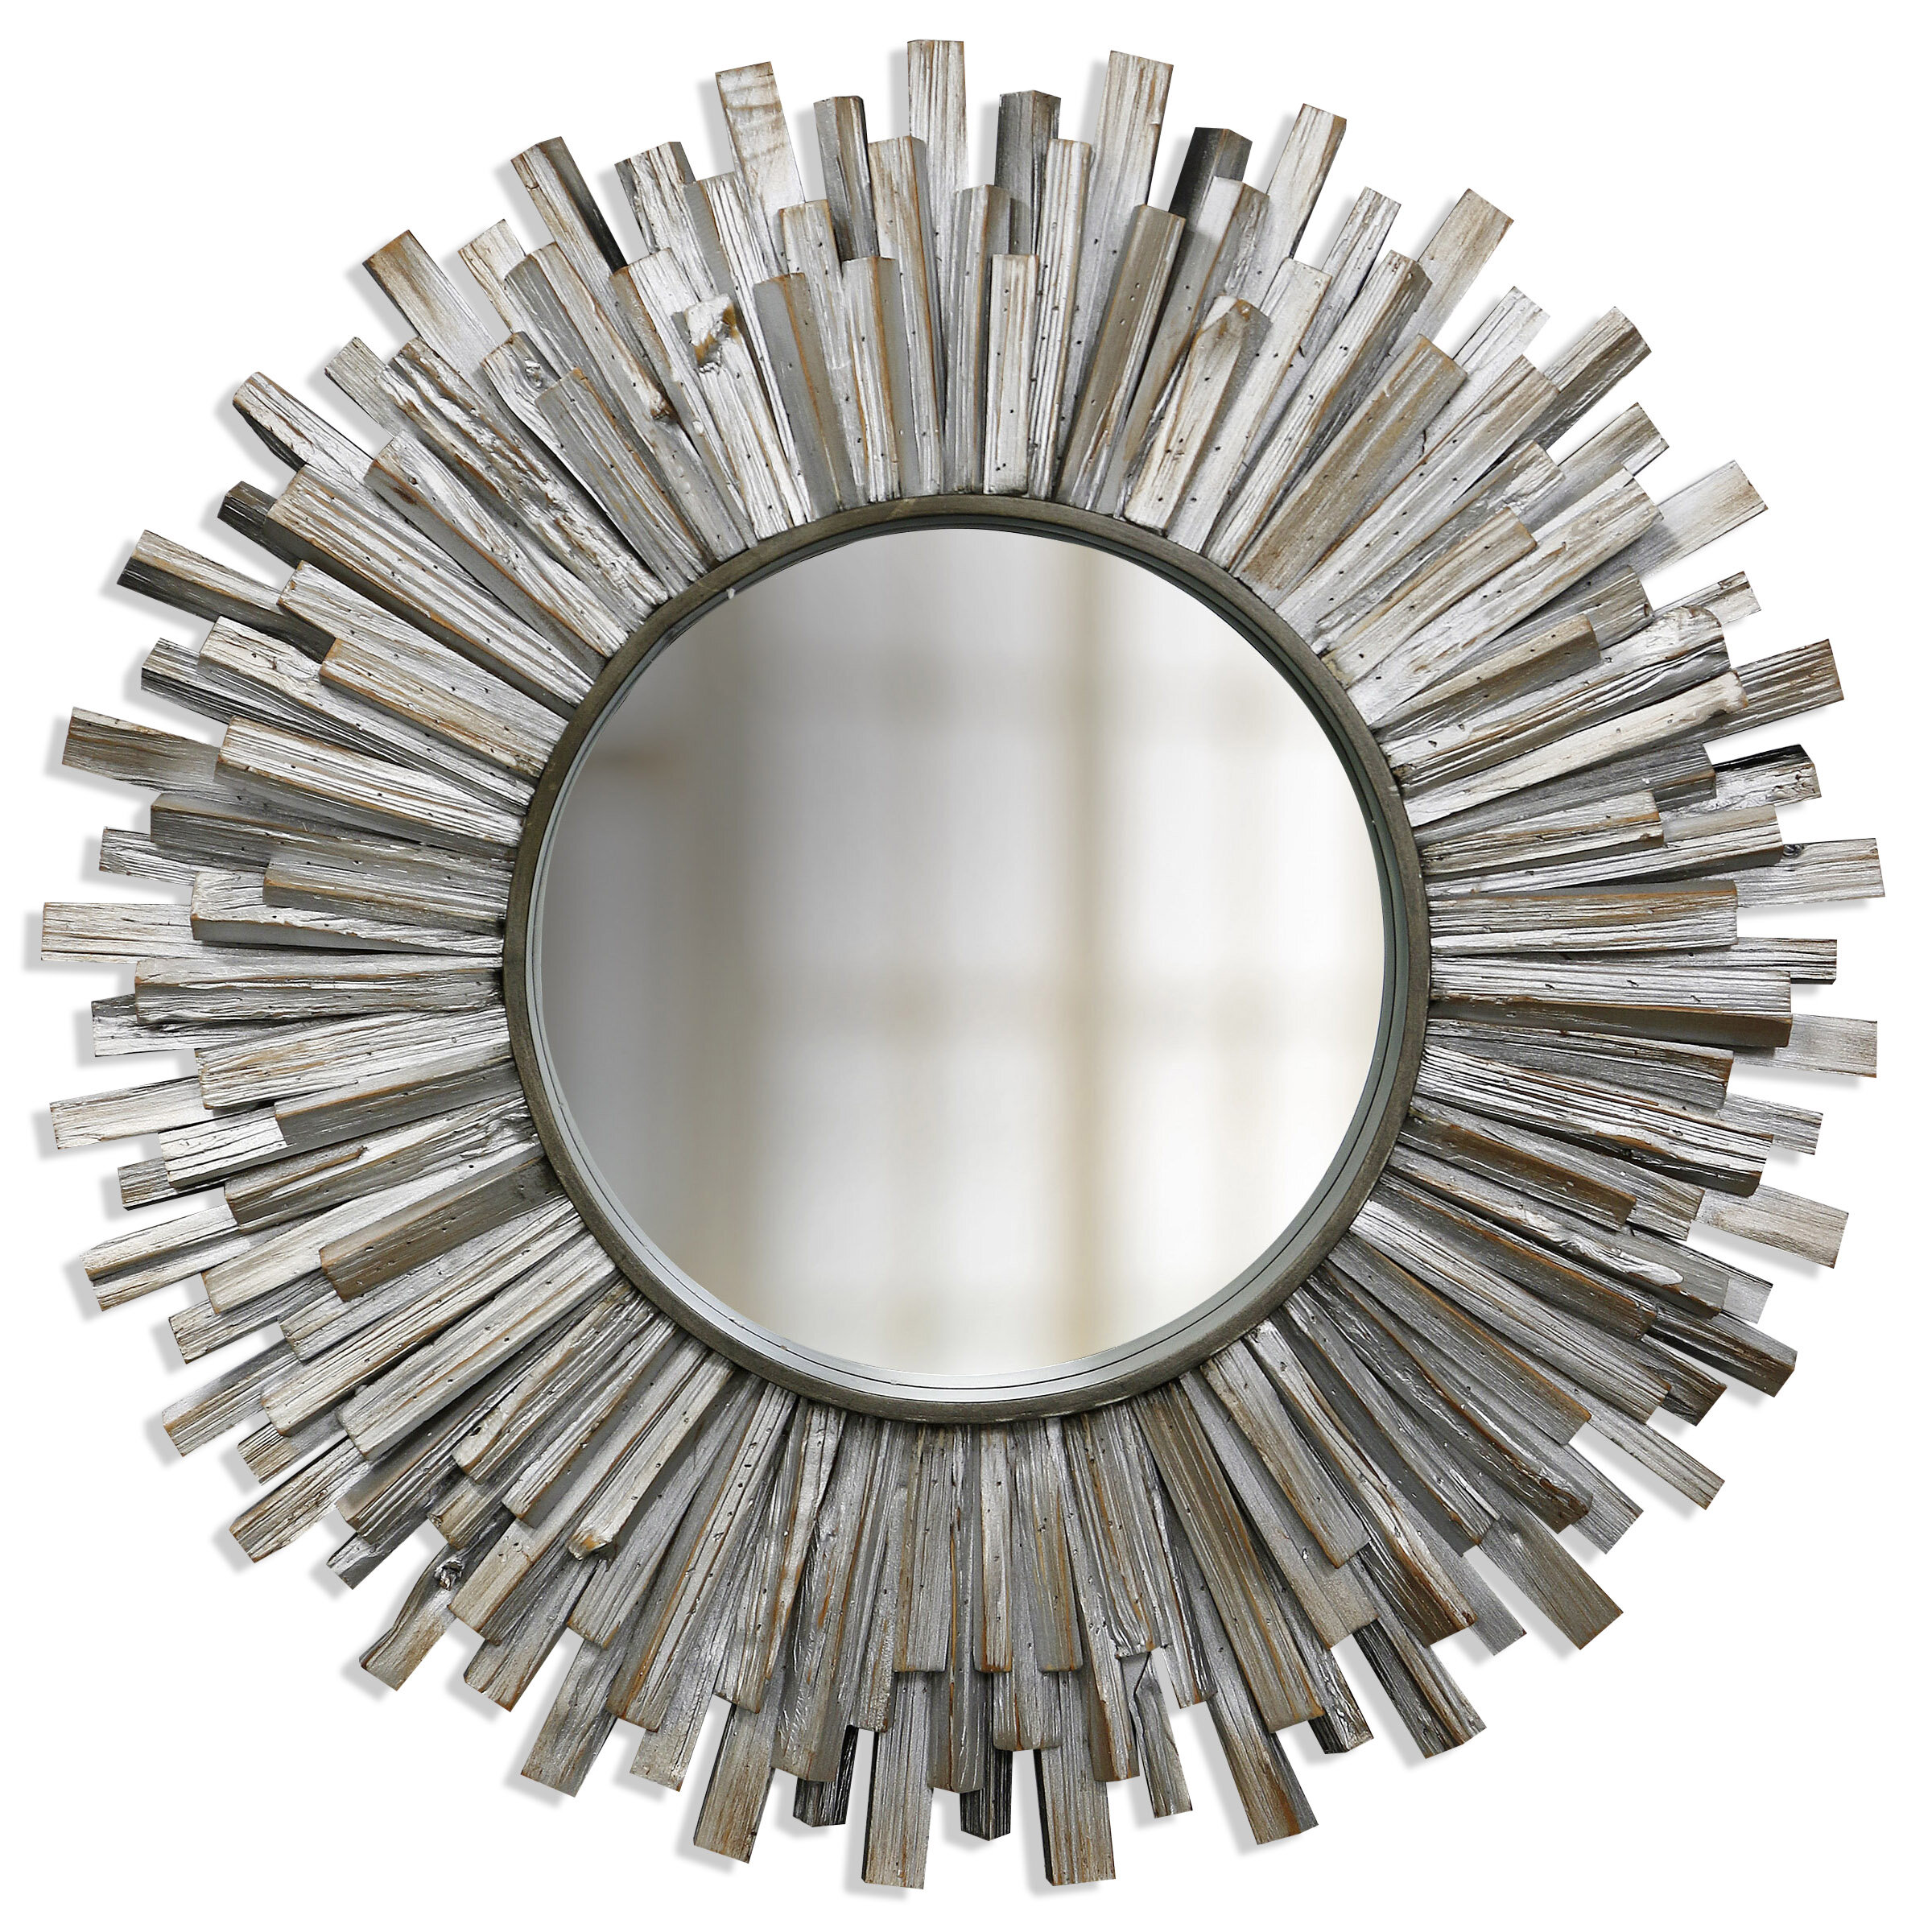 Beveled Rustic Wall Mirrors You Ll Love In 2021 Wayfair